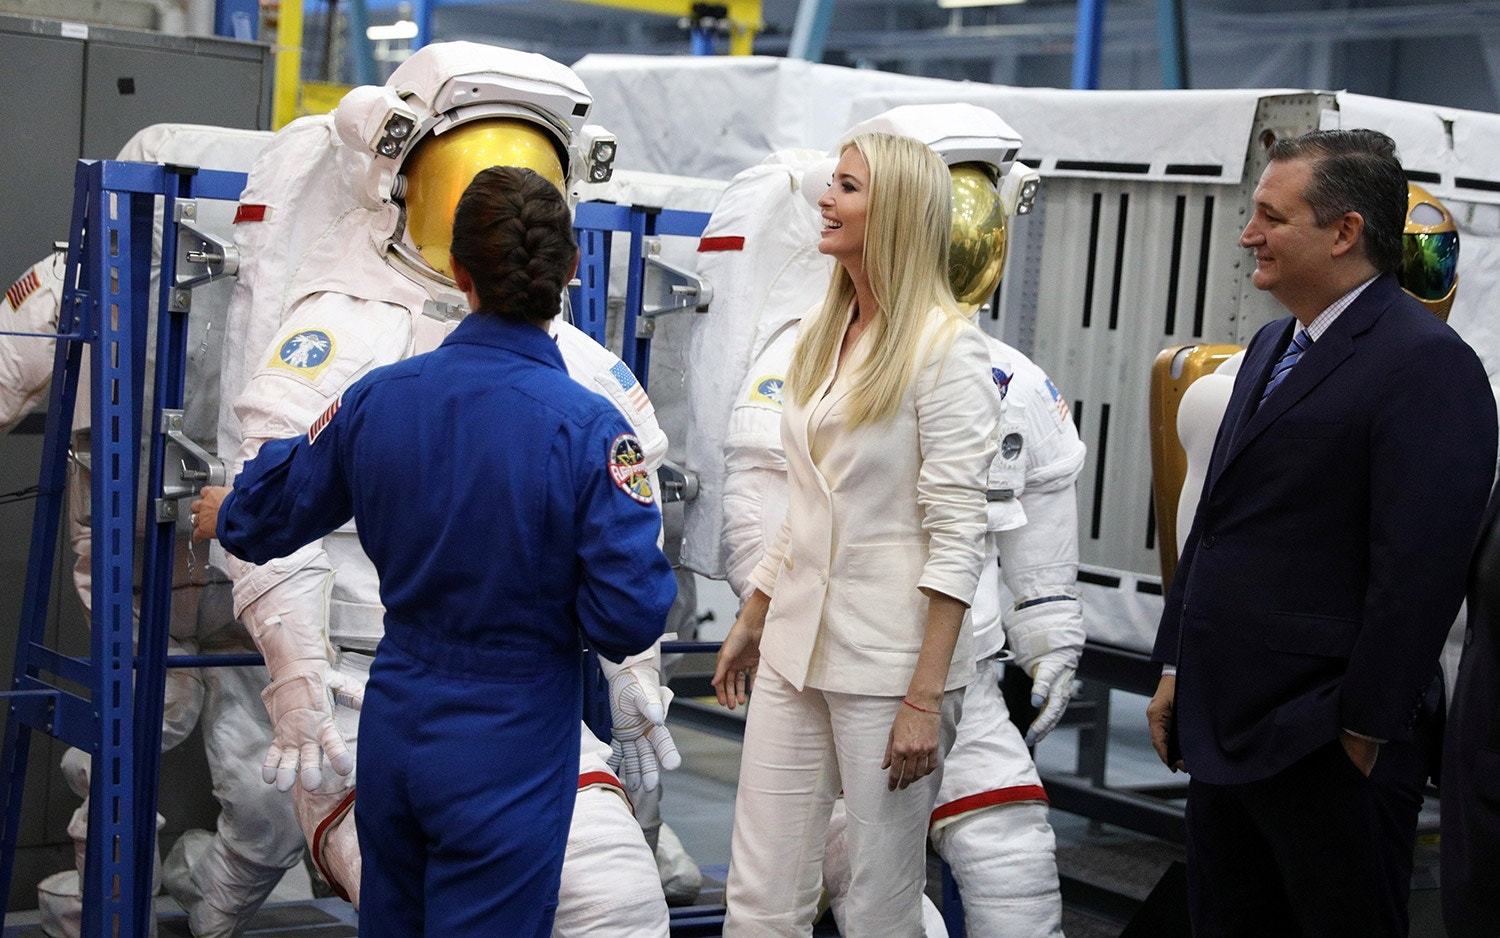 Astronaut Trump? Ivanka says she wanted to go to space in NASA visit | Fox News